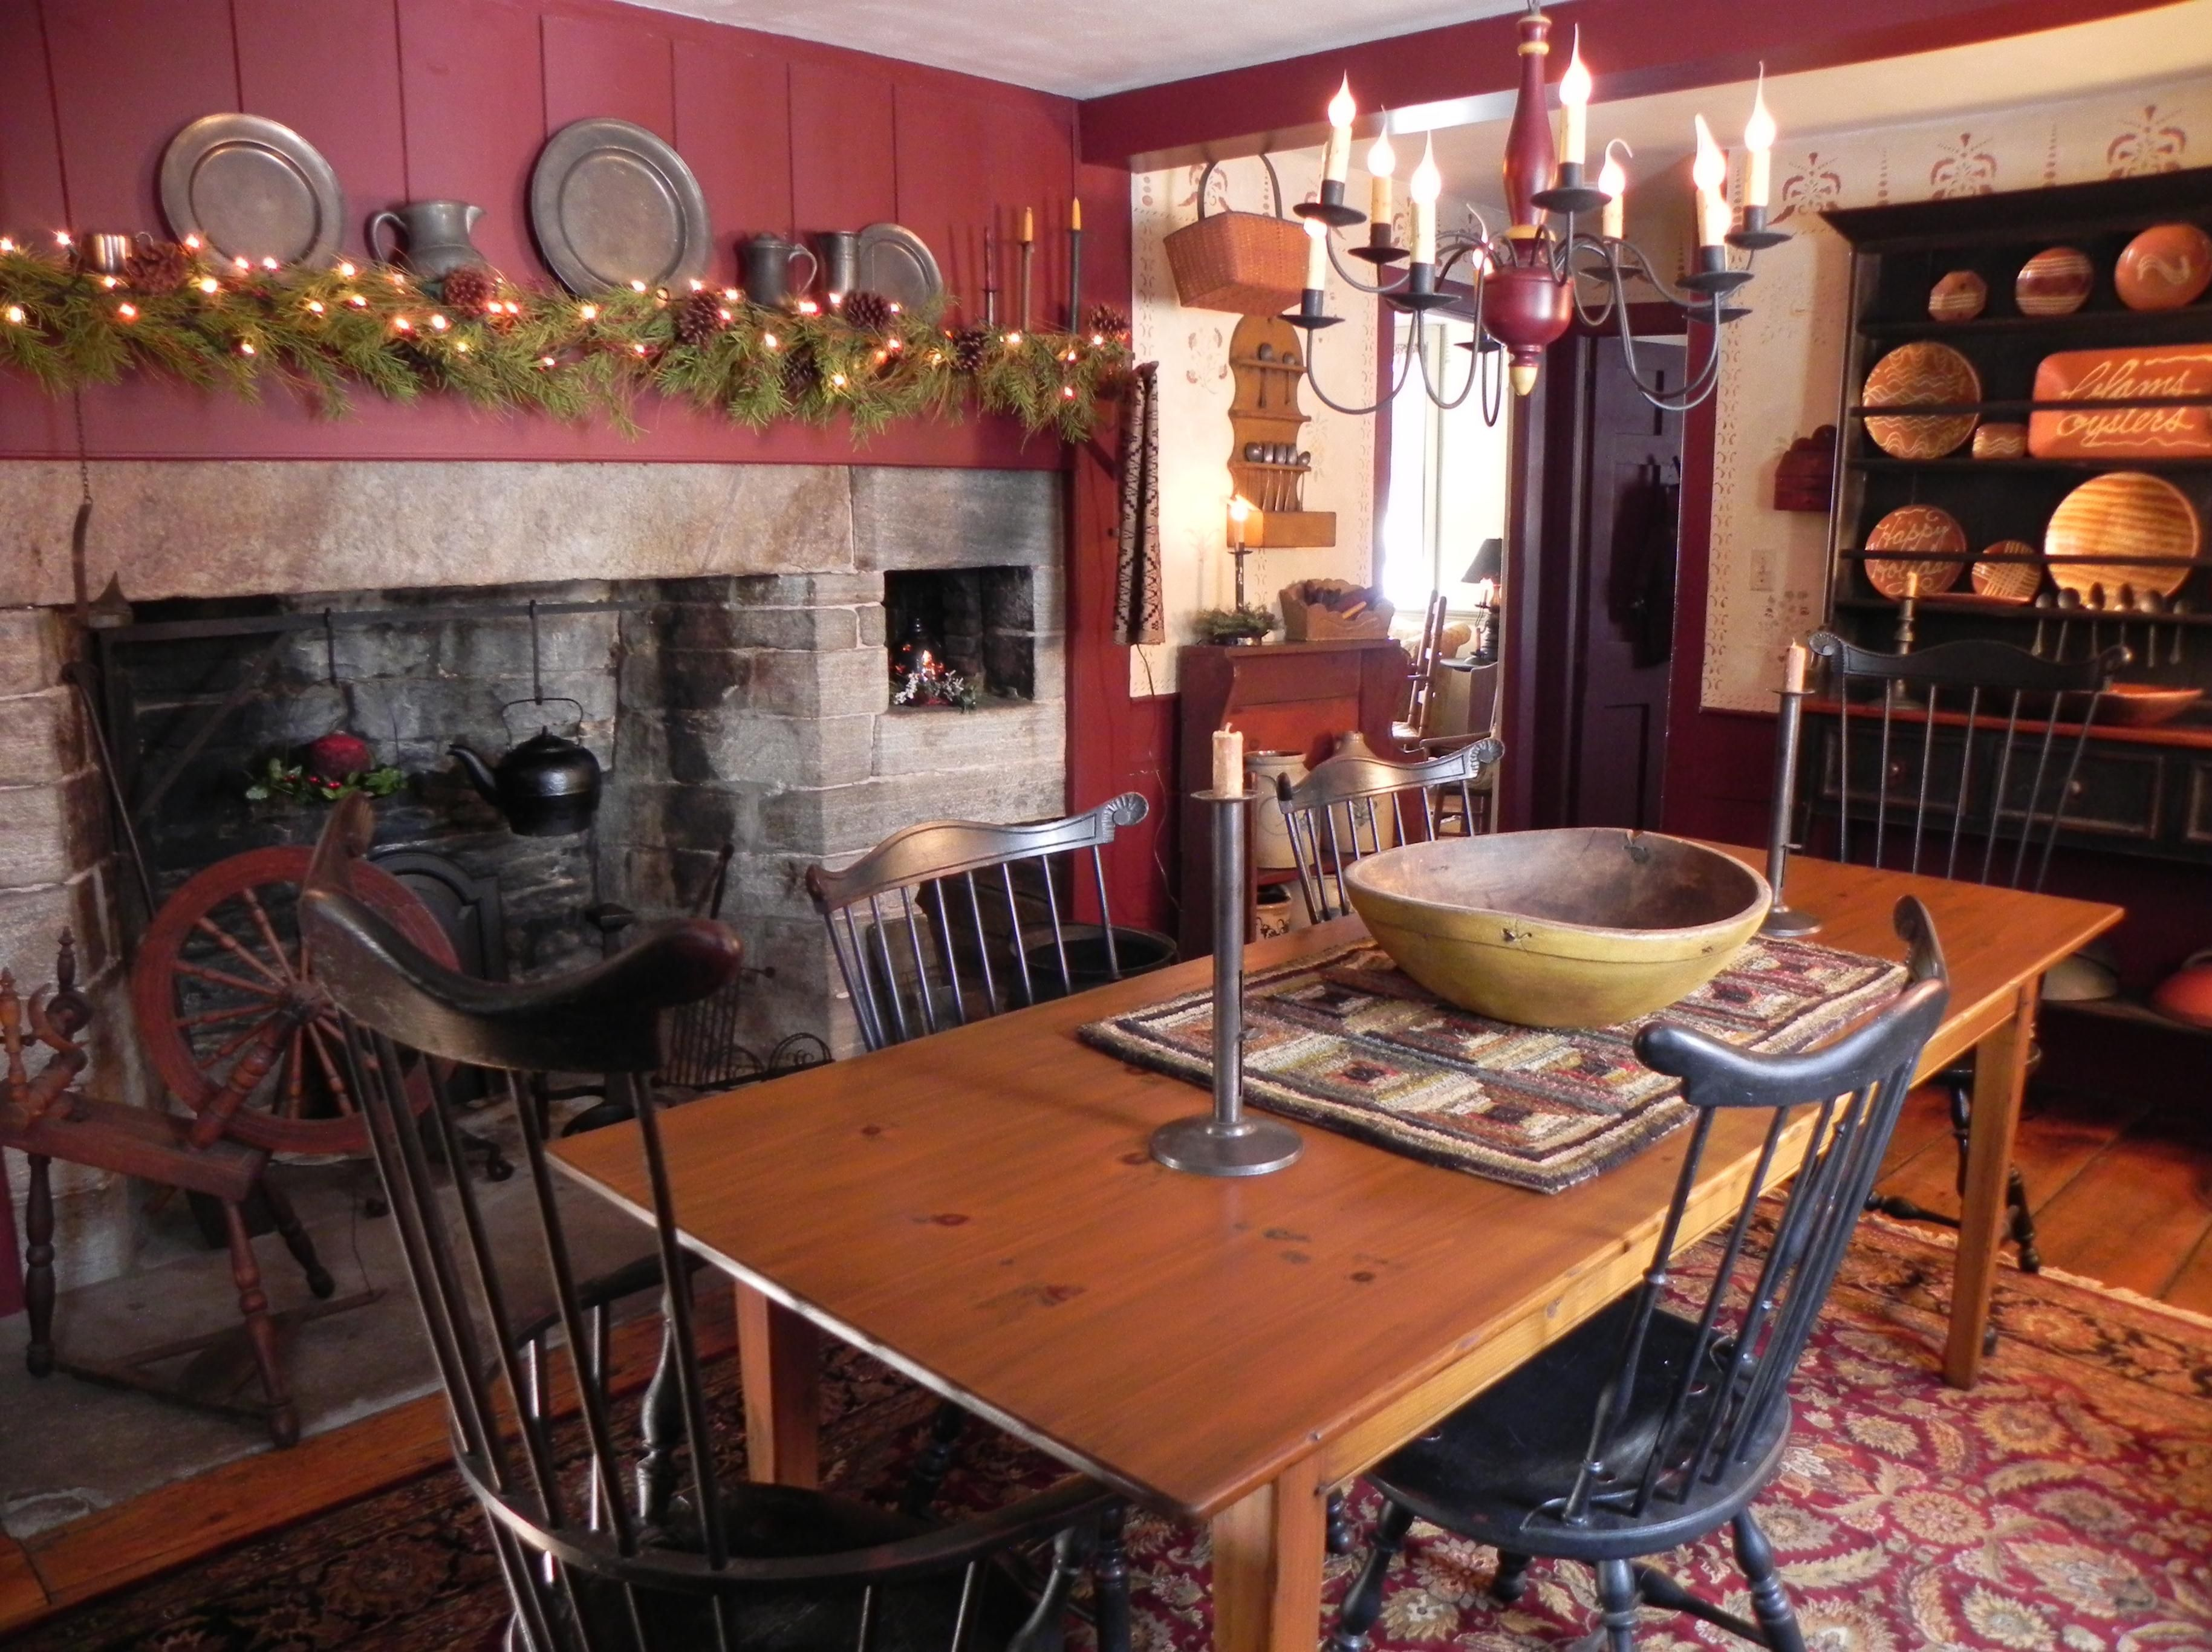 Room Ideas Gorgeous And Warm CozyI Think I Need To Repaint My Dining Primitive